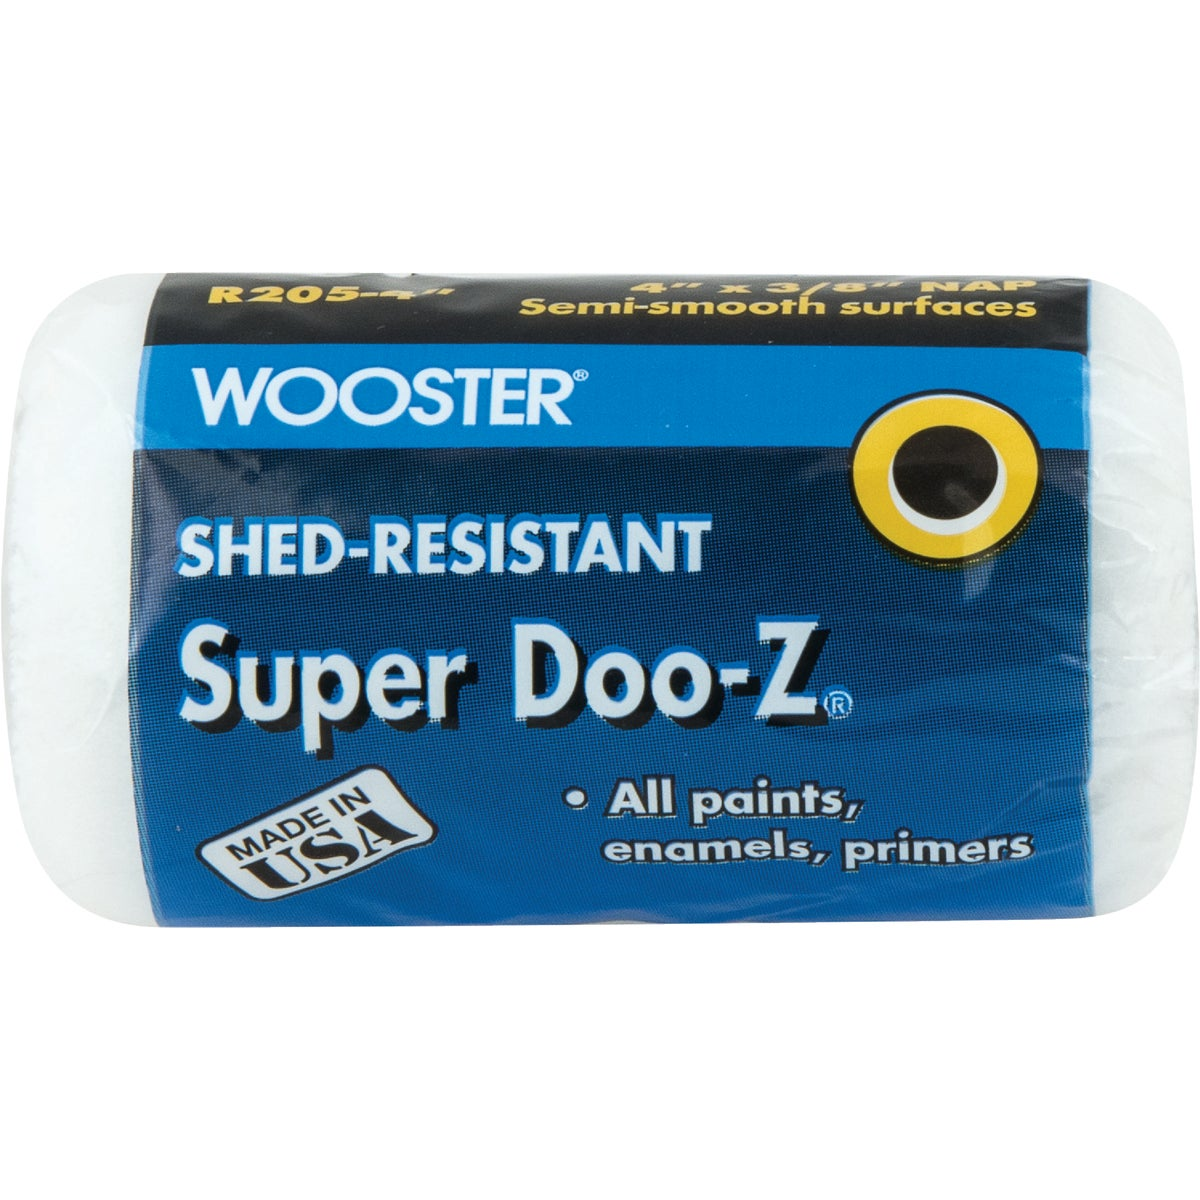 4X3/8 ROLLER COVER - R205-4 by Wooster Brush Co